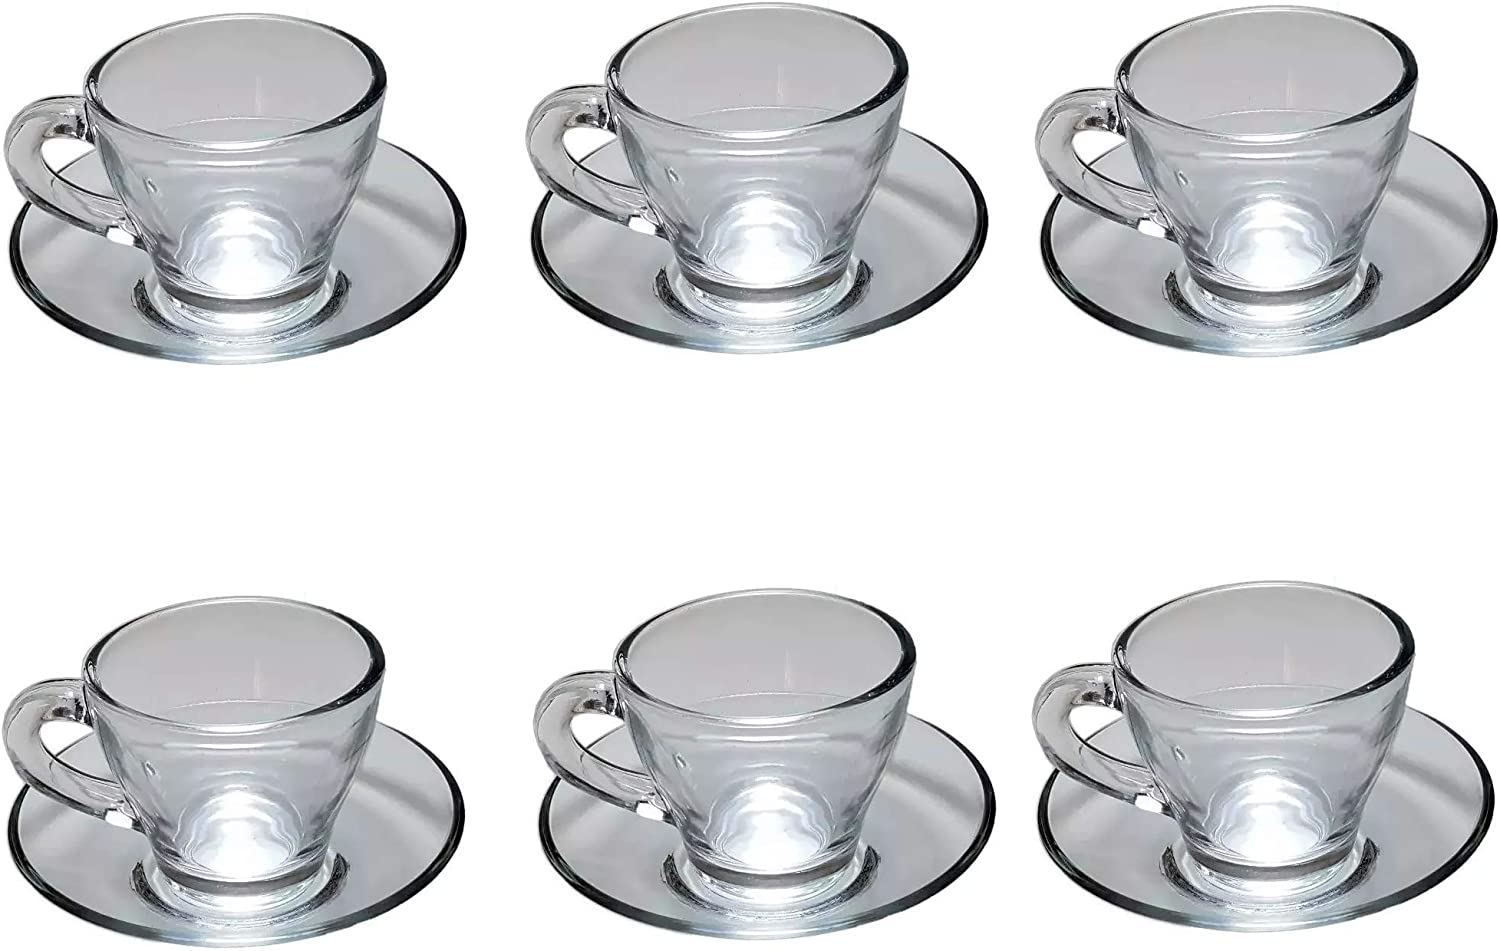 Cok gb6 Toscana Cafe Set, 30 x 6,5 x 5,6 cm: Amazon.es: Hogar